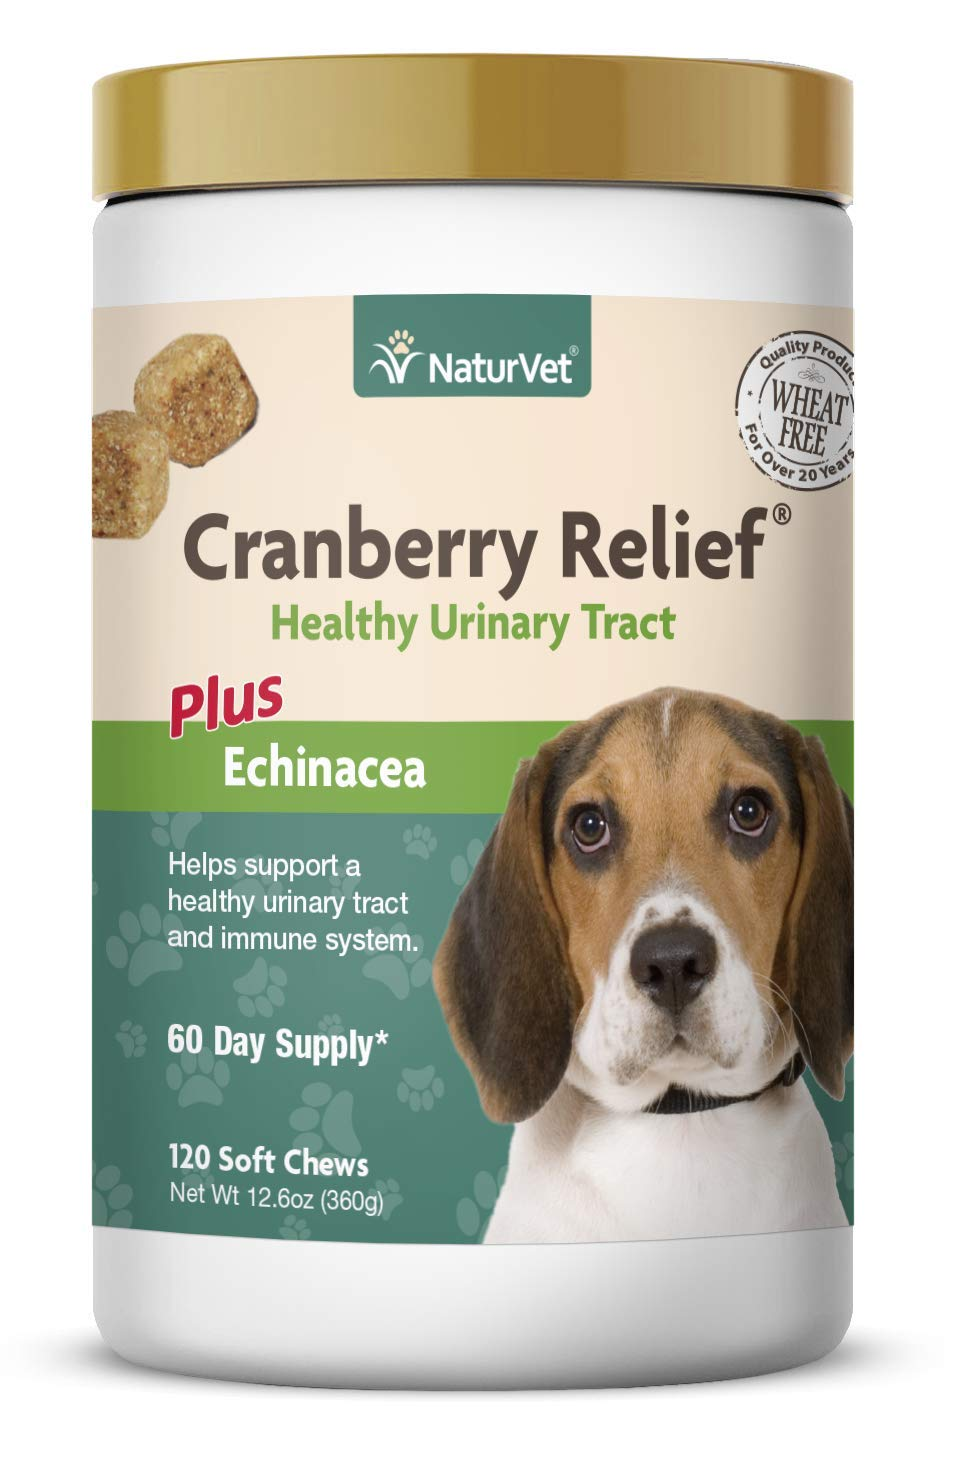 NaturVet - Cranberry Relief Plus Echinacea - Helps Support a Healthy Urinary Tract & Immune System - 120 Soft Chews by NaturVet